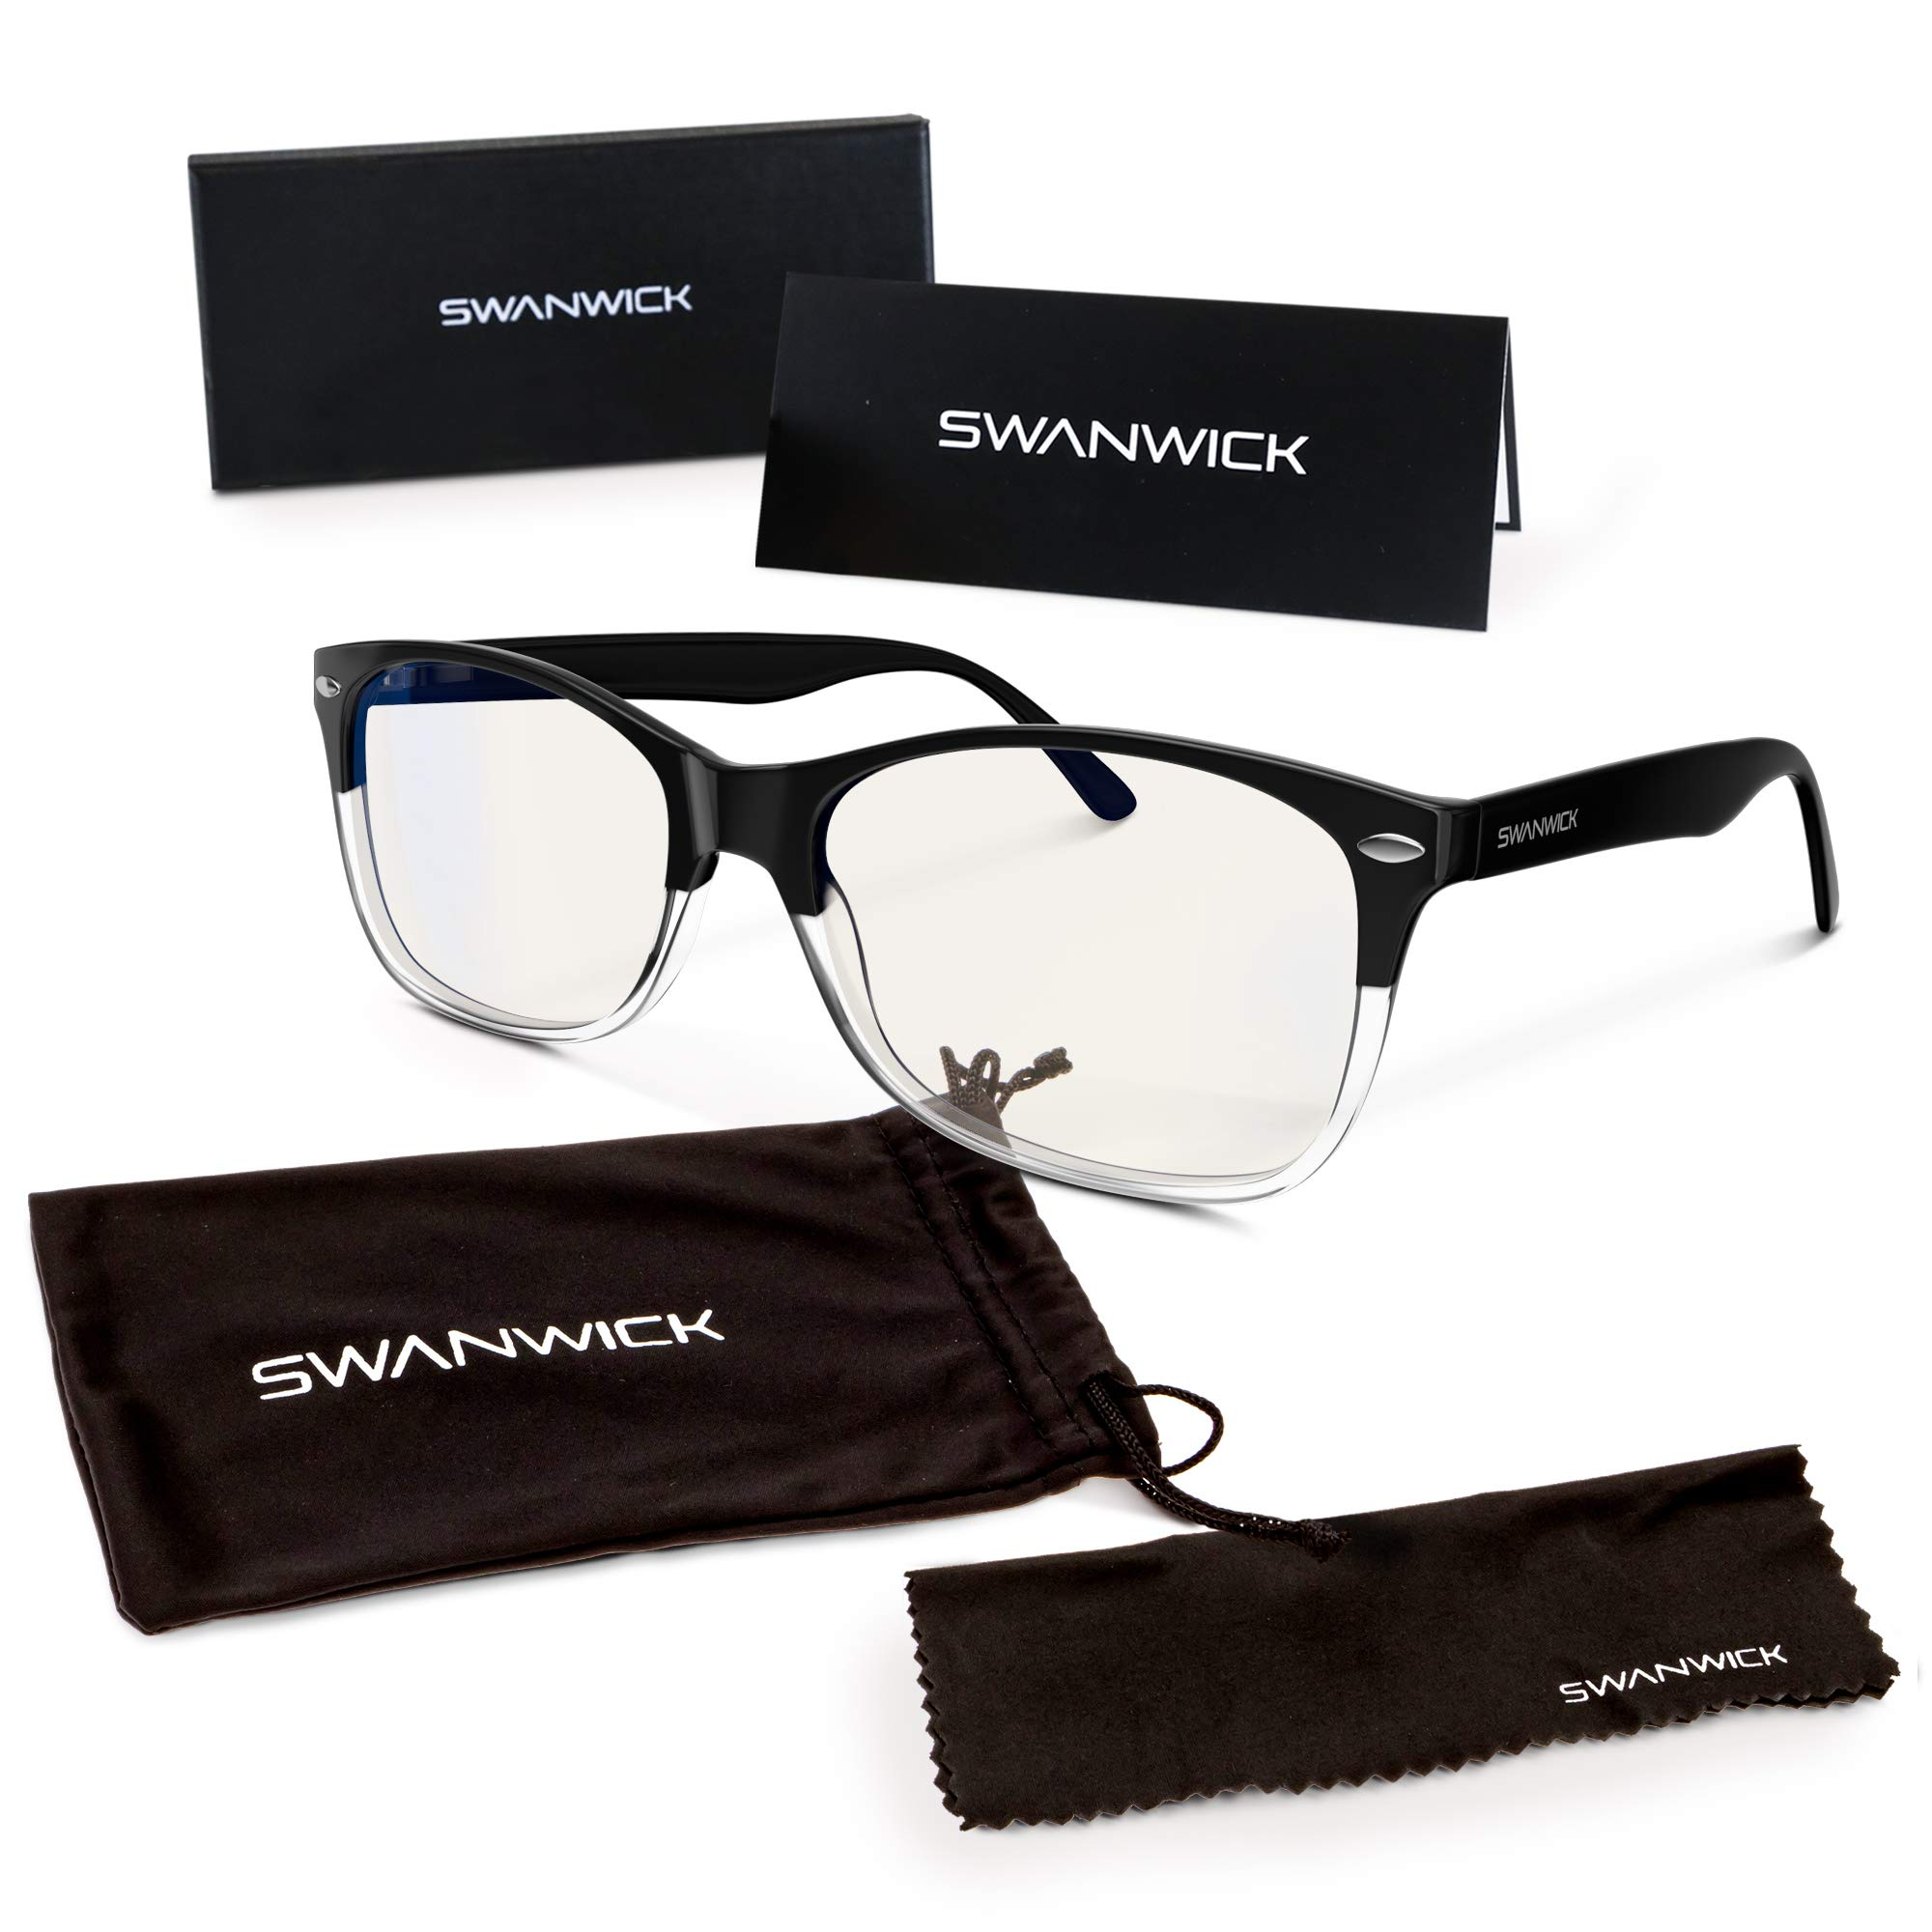 Swannies Premium Daytime Blue Light Blocking Computer Glasses for Gaming, Reading or Work - Dry Eye Relief (Two Tone Black) Regular